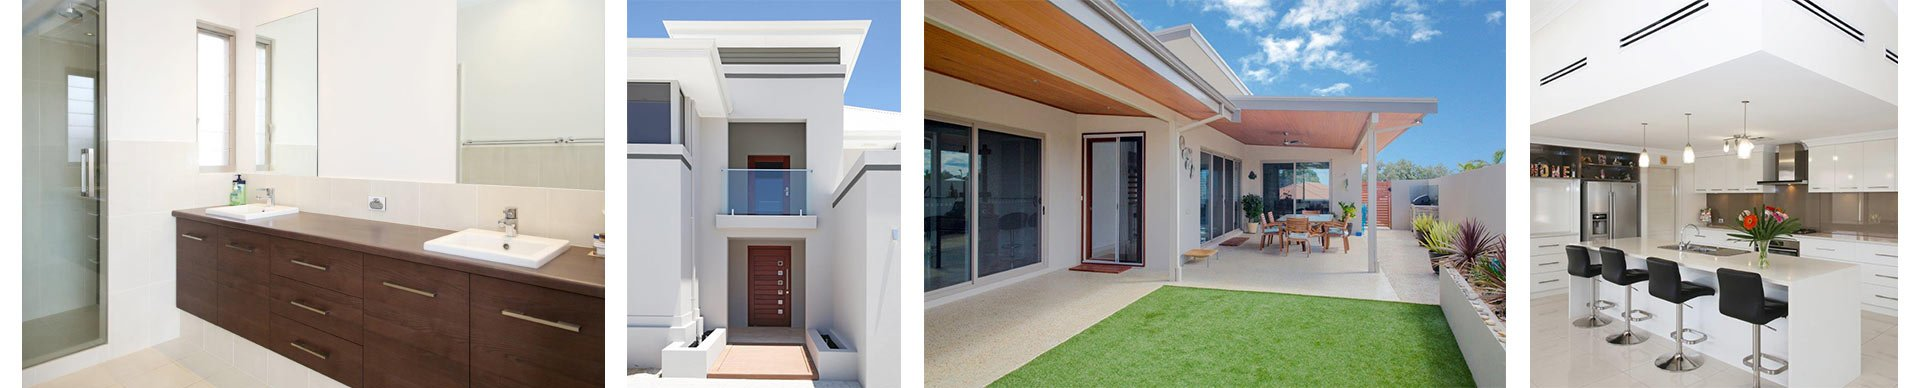 Building-Design Examples in Geraldton